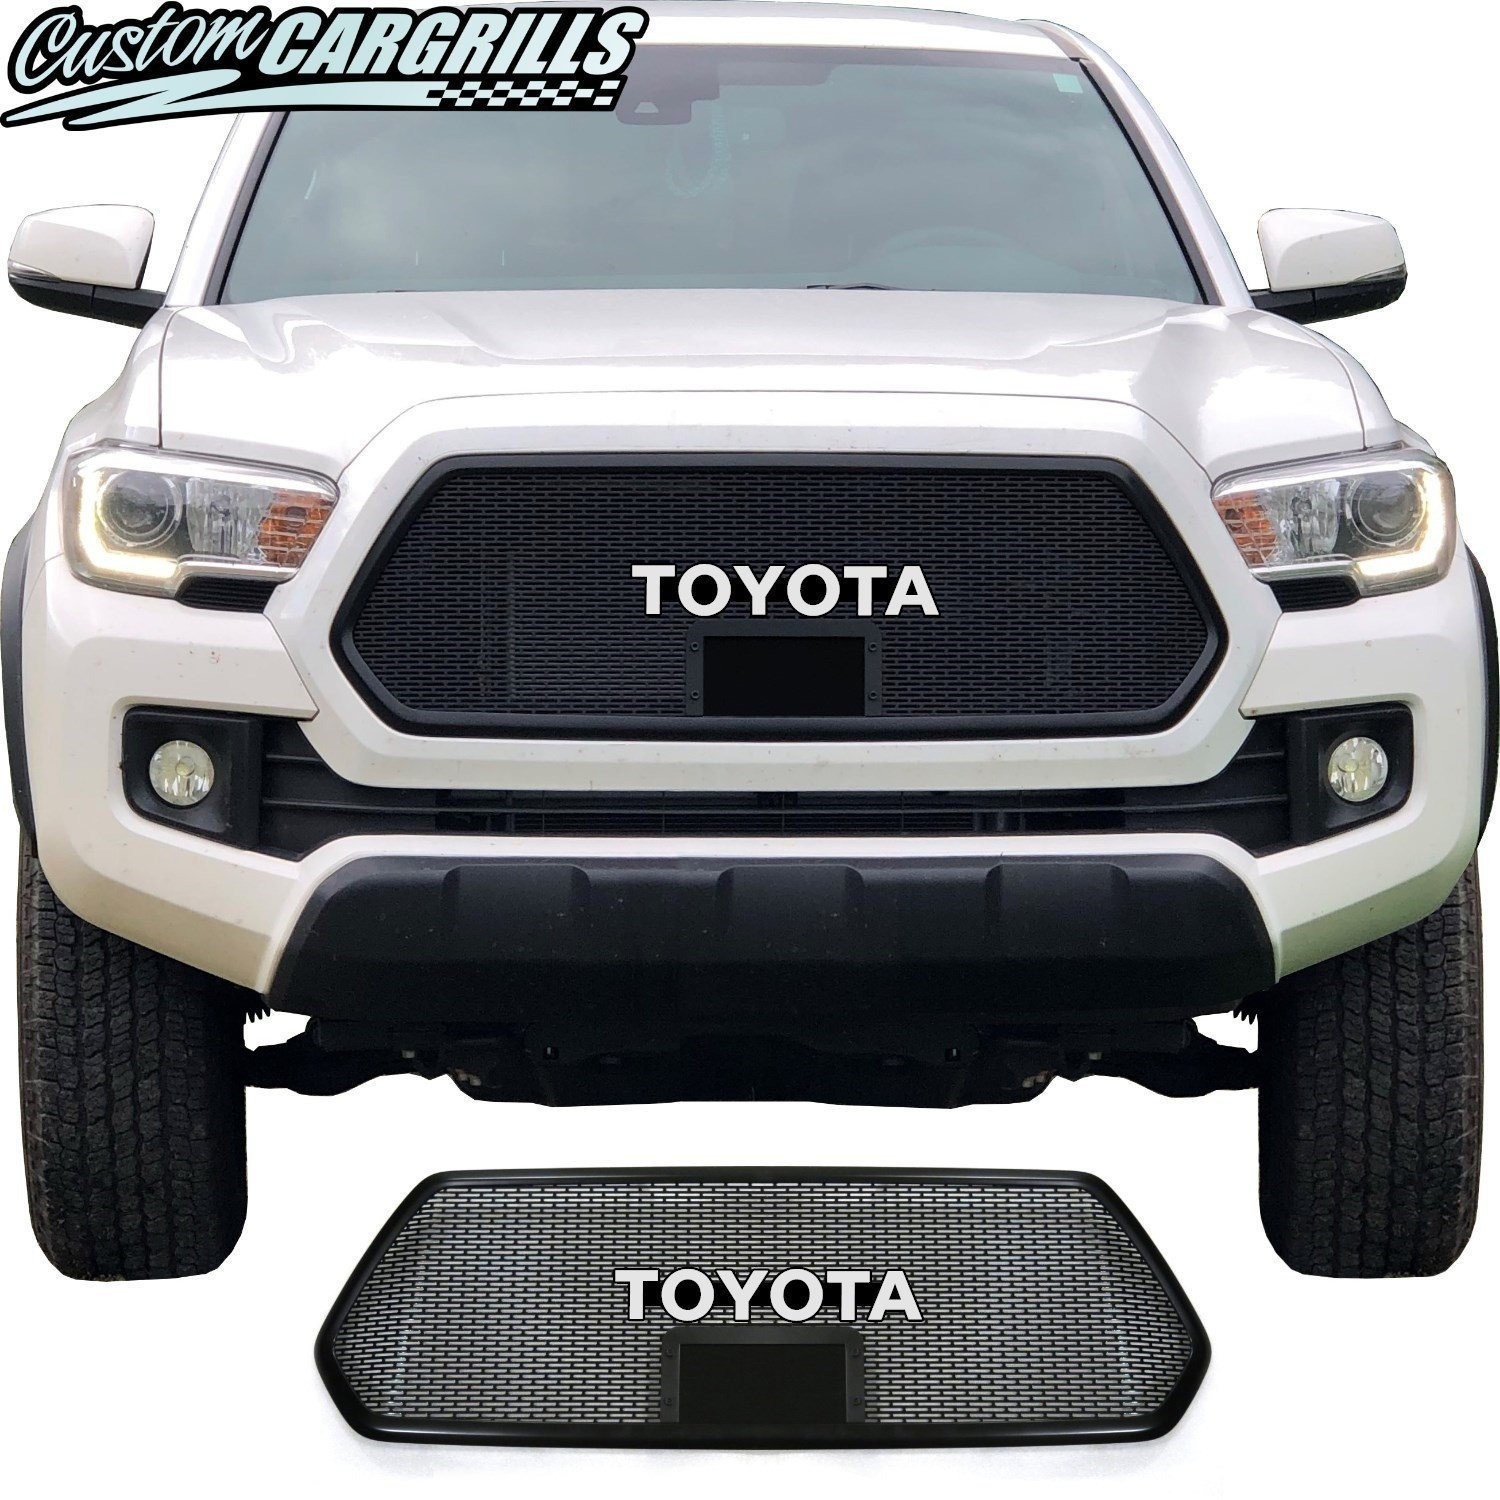 2018 - 2019 Toyota Tacoma Mesh Grill with Bezel and Emblem